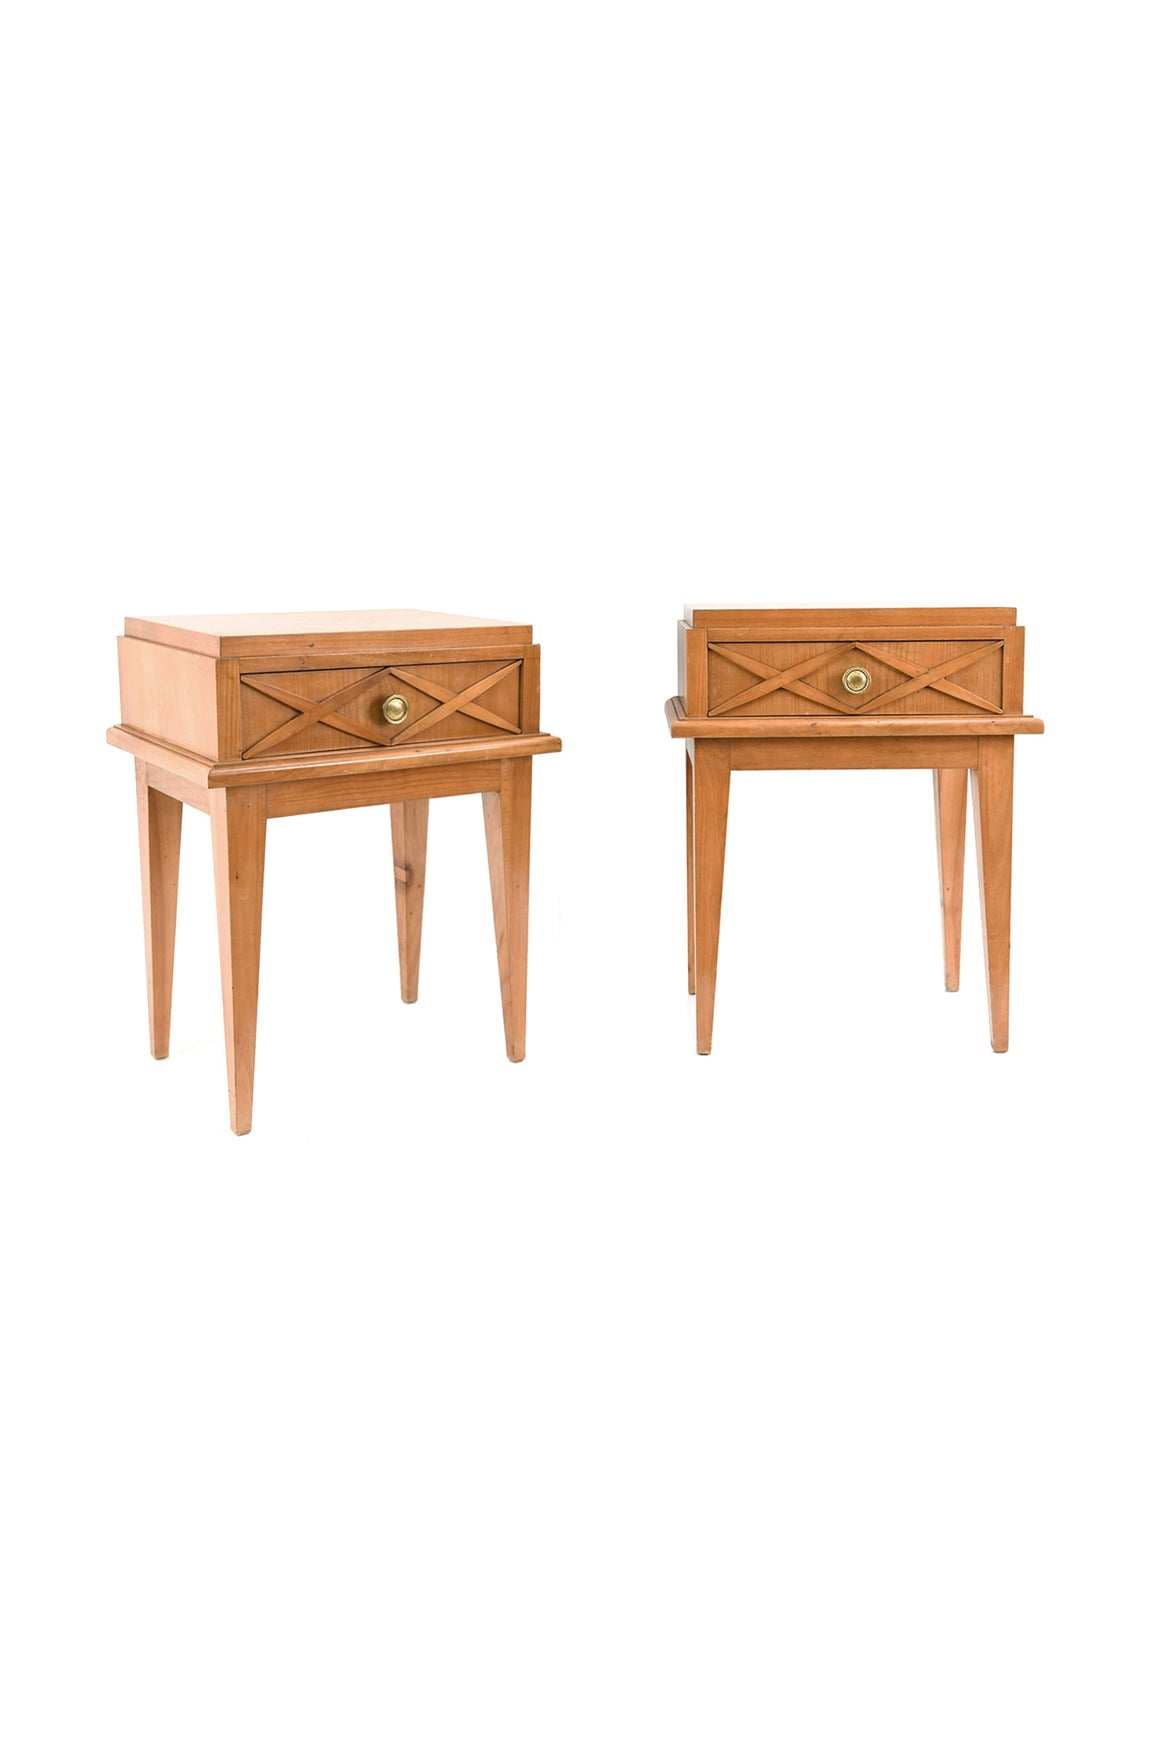 Pair of Mid-20th Century Side Tables in the Style of Maison Gouffé Paris - ON HOLD